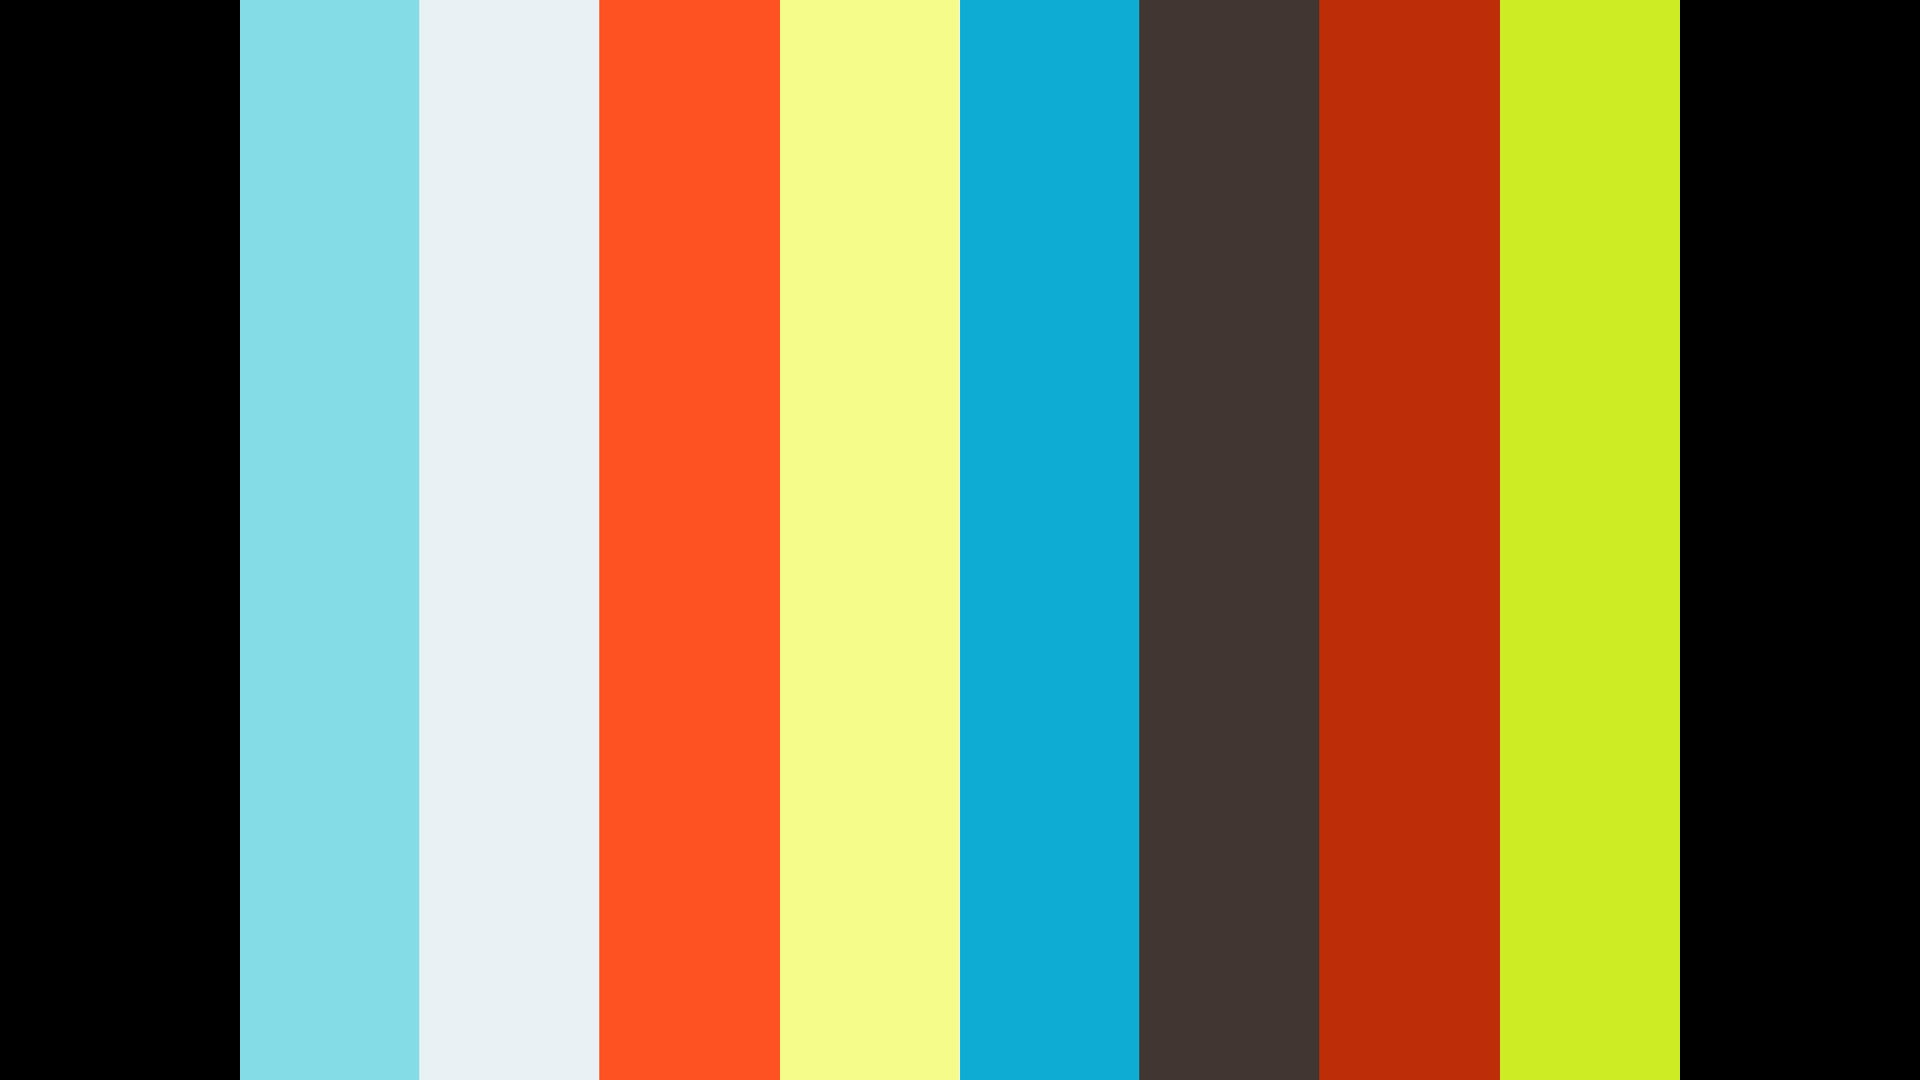 Thomas & Friends - Hear the Engines Coming